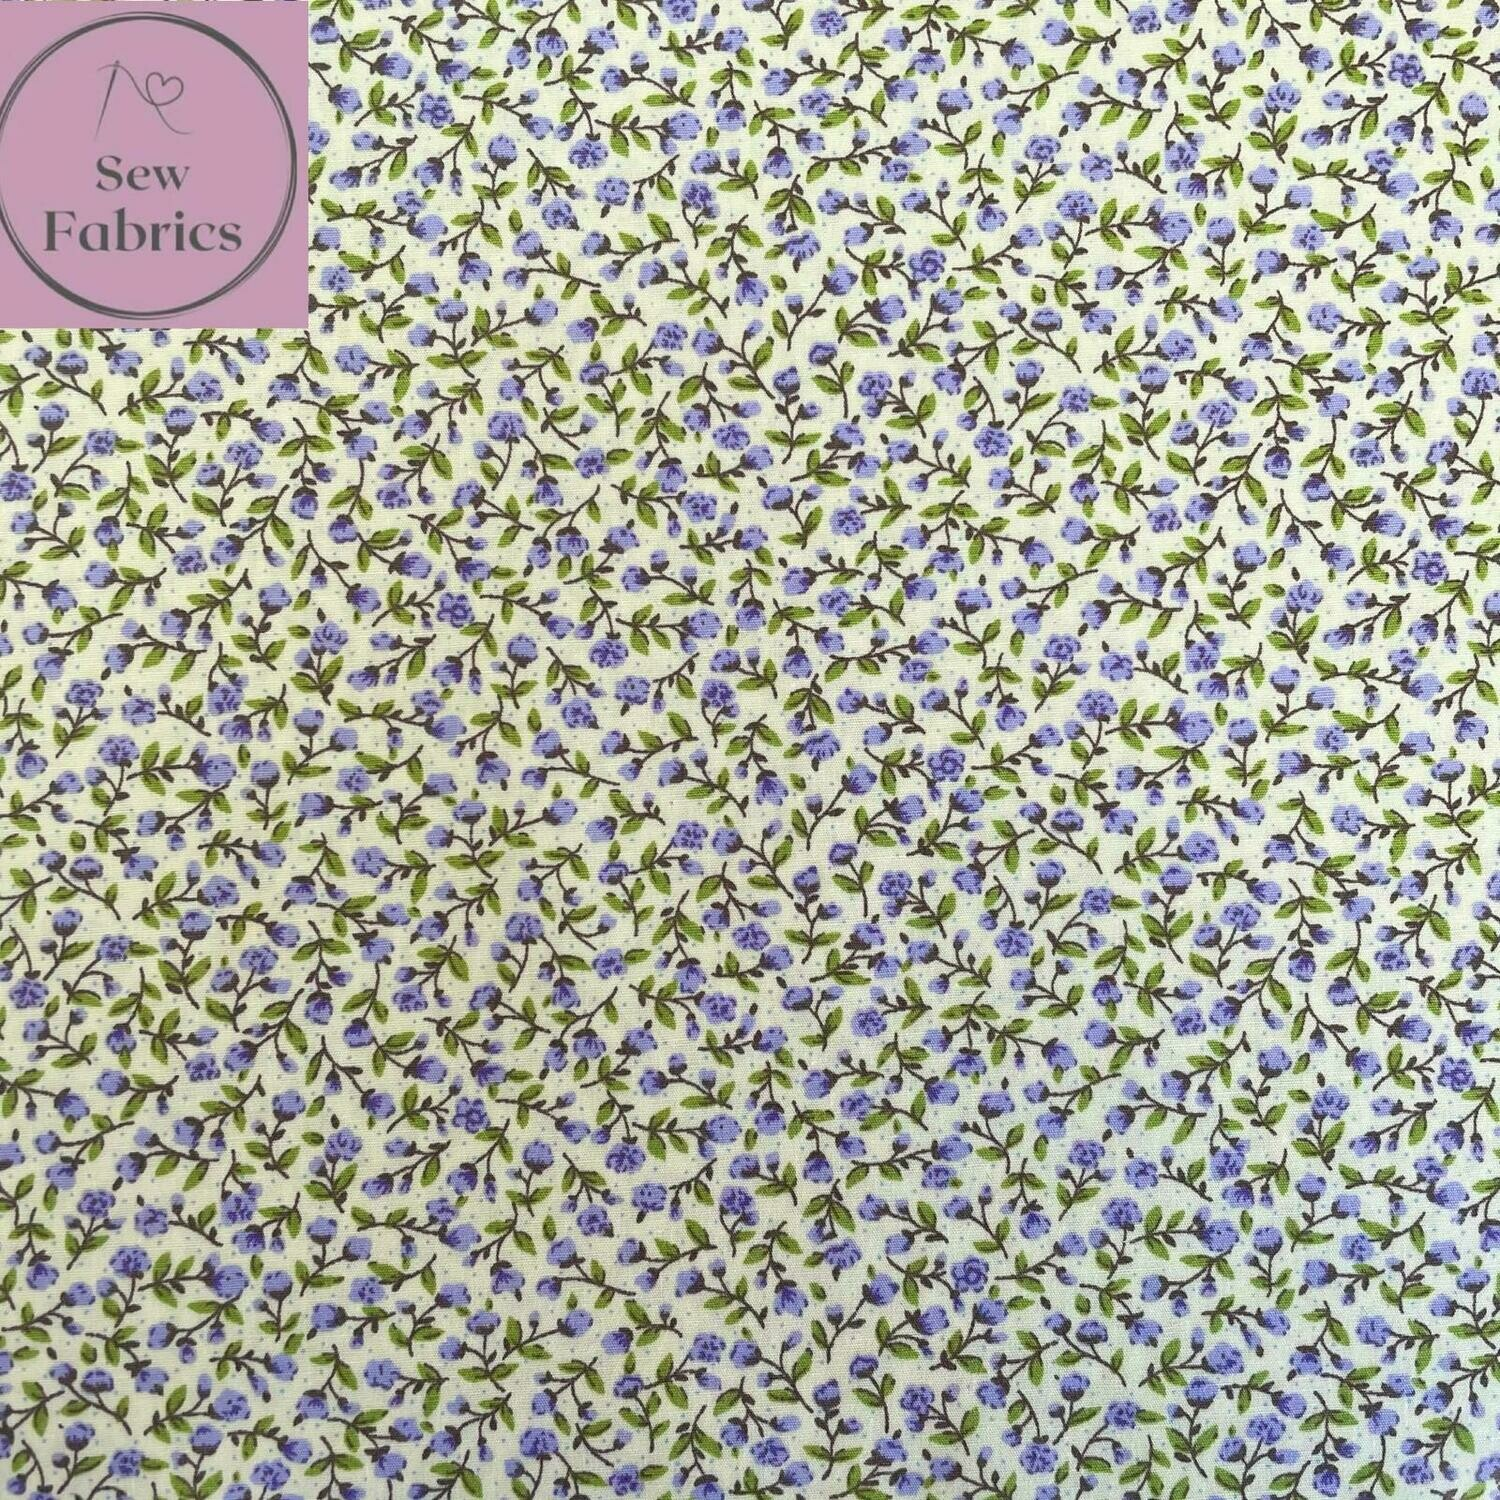 Rose and Hubble Lilac Ditsy Floral Fabric 100% Cotton Poplin Flower